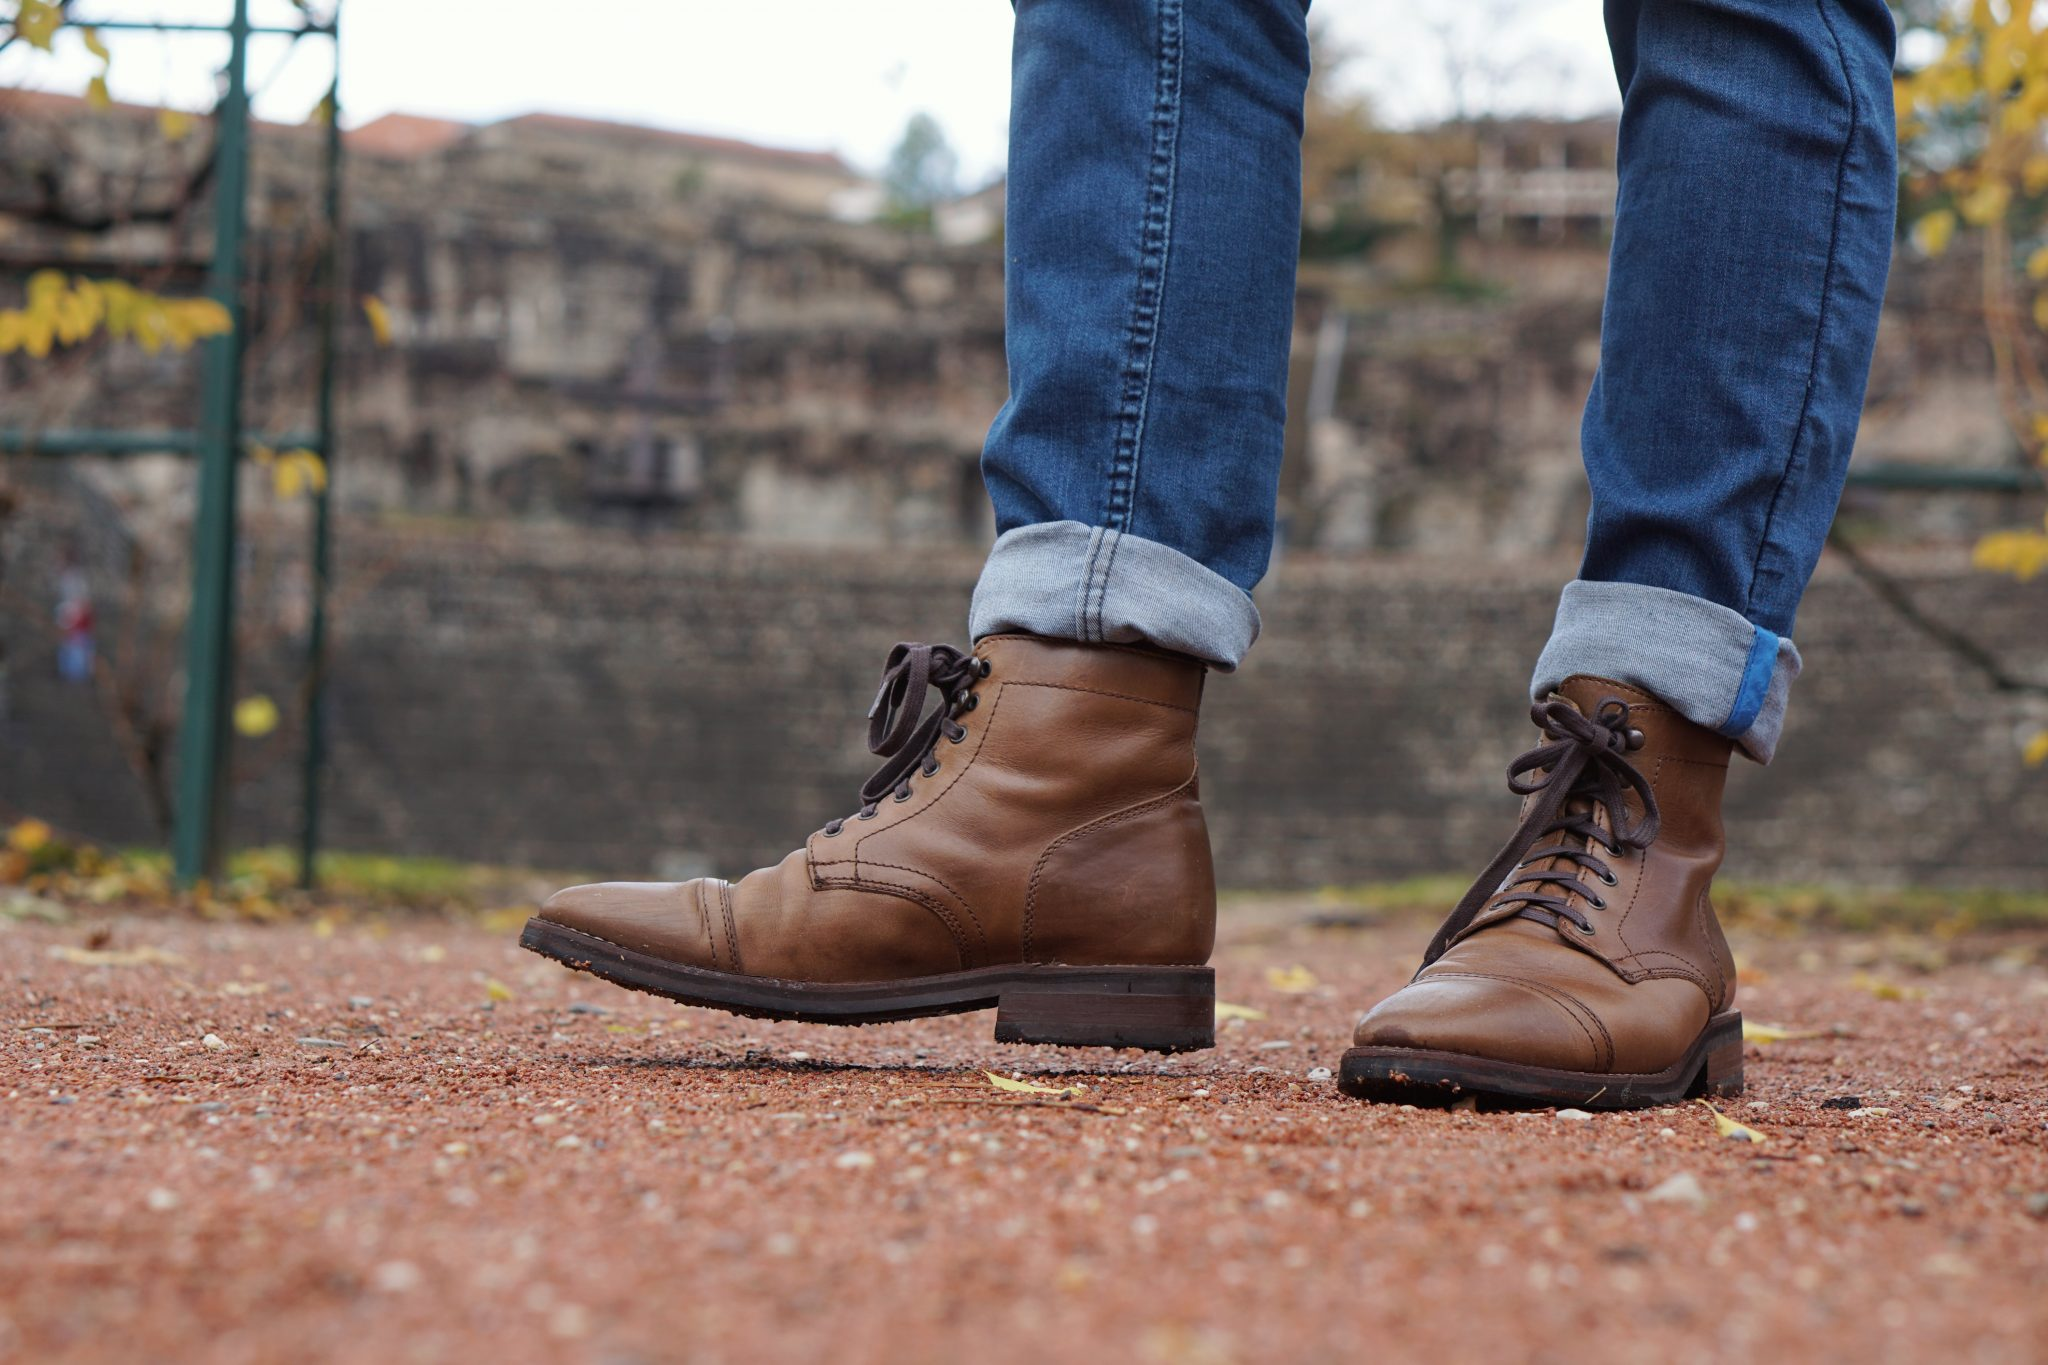 Buy Thursday Boot Shoe, Men's Lace-up Boot in Sale on Amazon, Worth Rs. 15,000